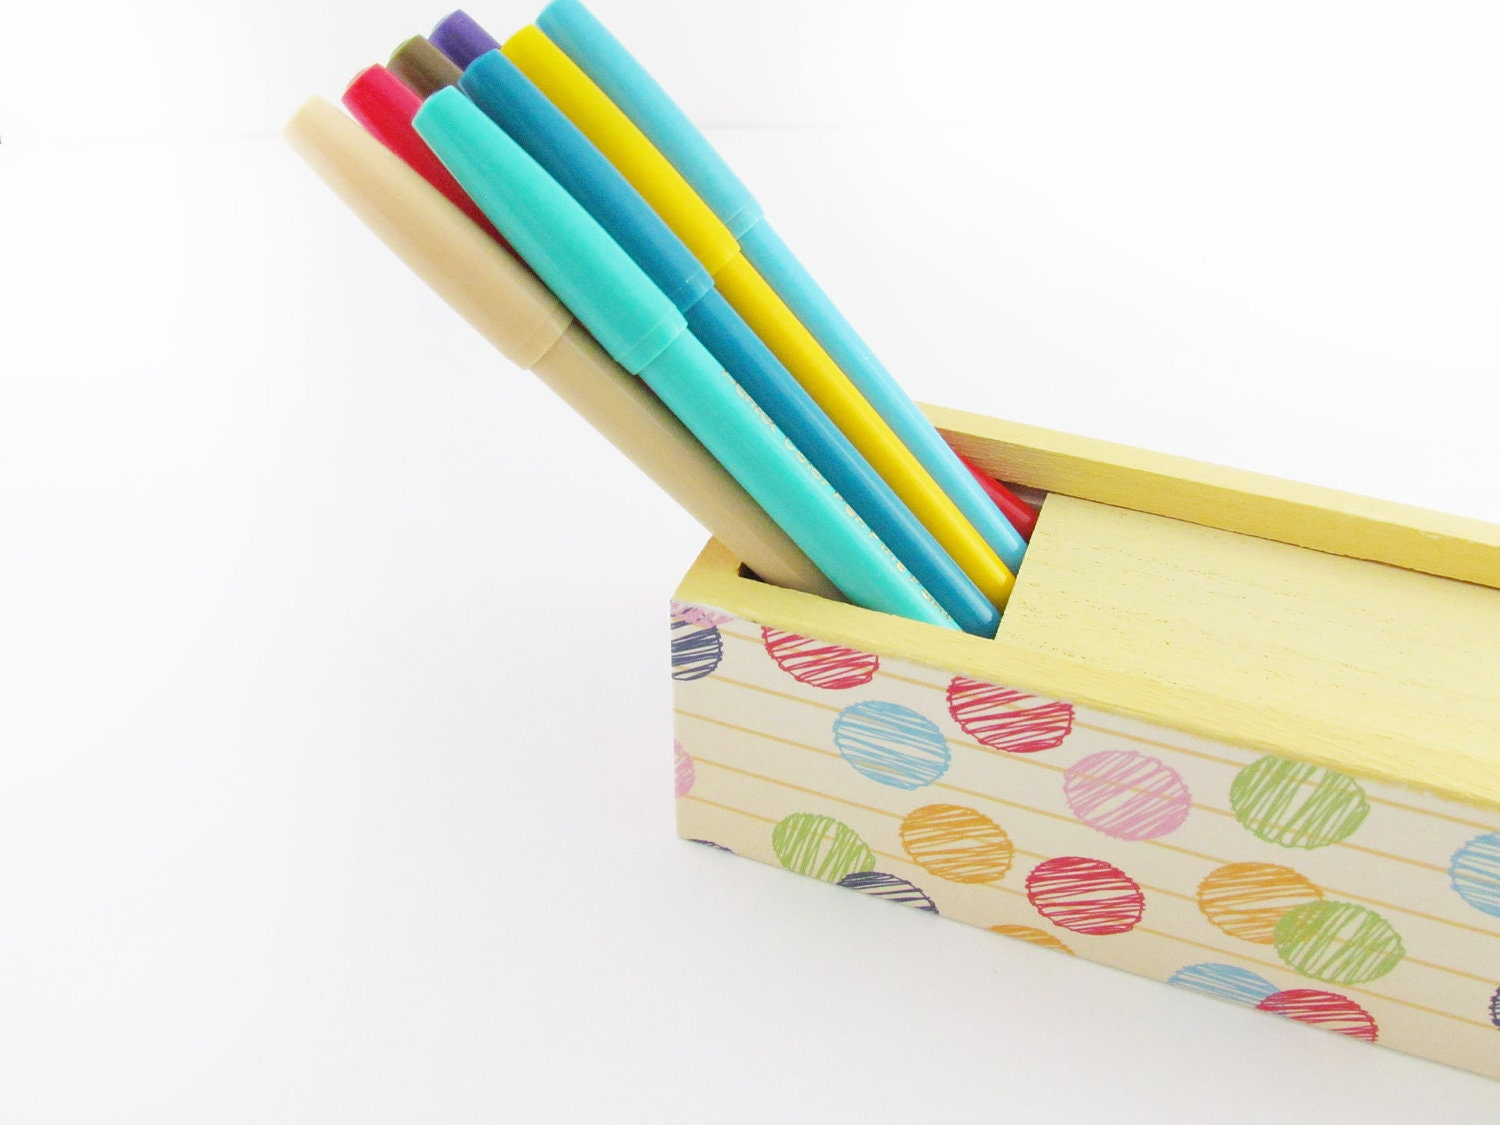 Polka Dotted Scribbles Craft Art Supply Box by Walter Silva